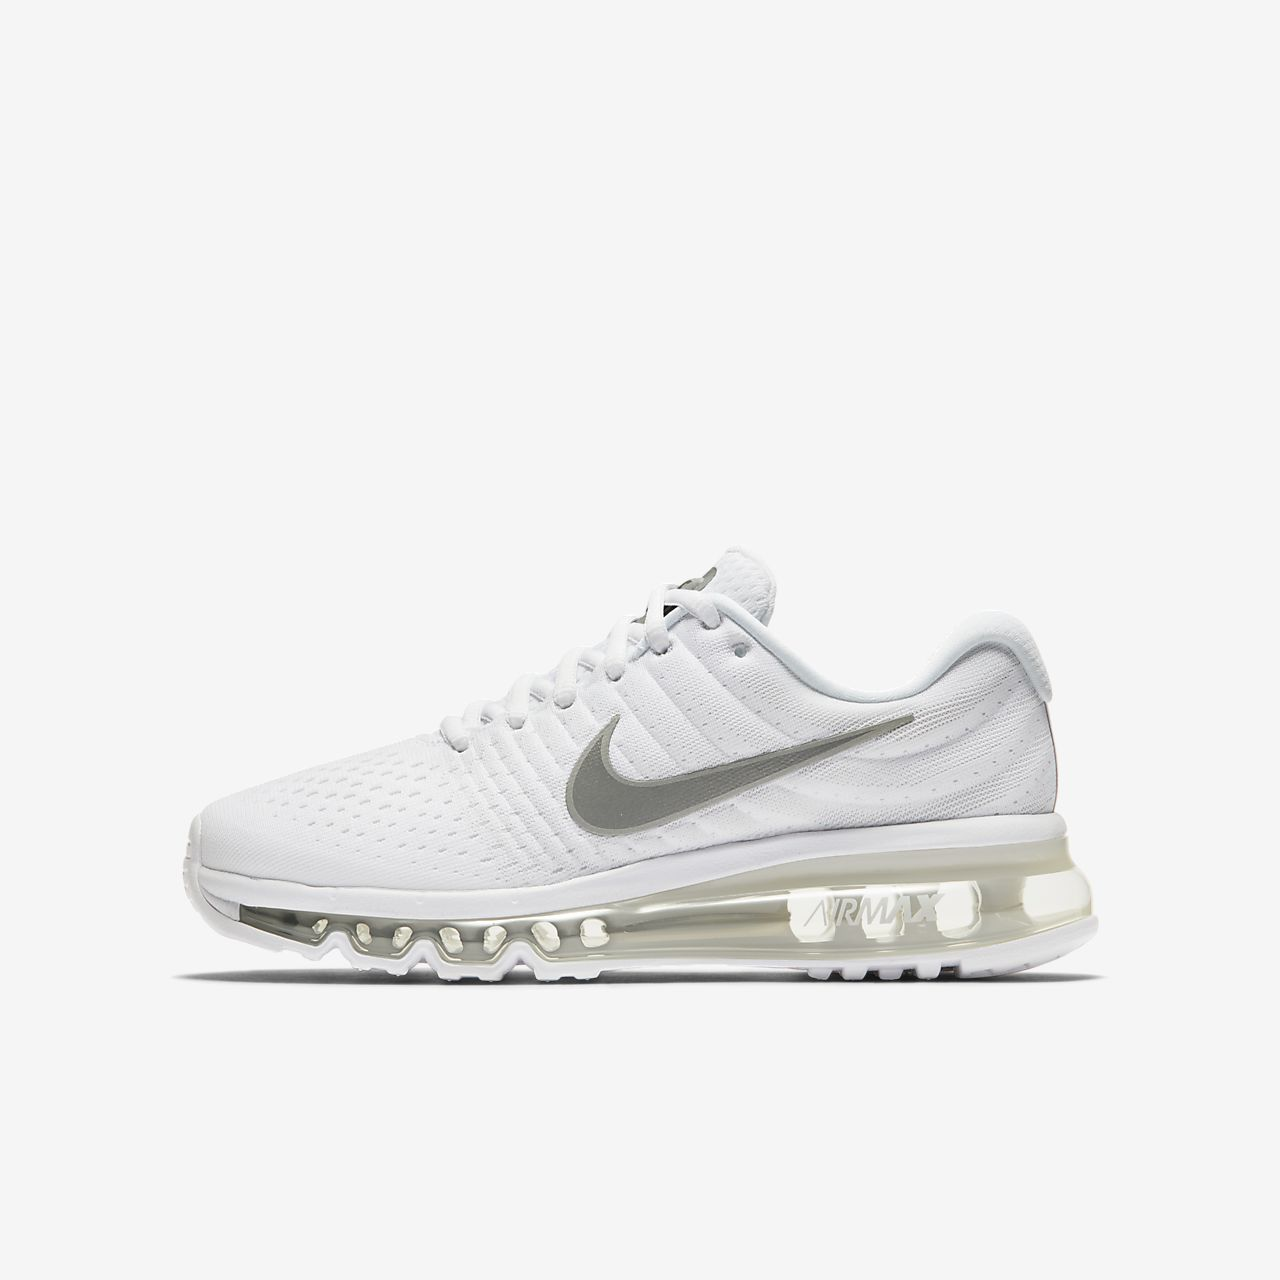 07b5619b101 Nike Air Max 2017 Older Kids  Shoe. Nike.com GB